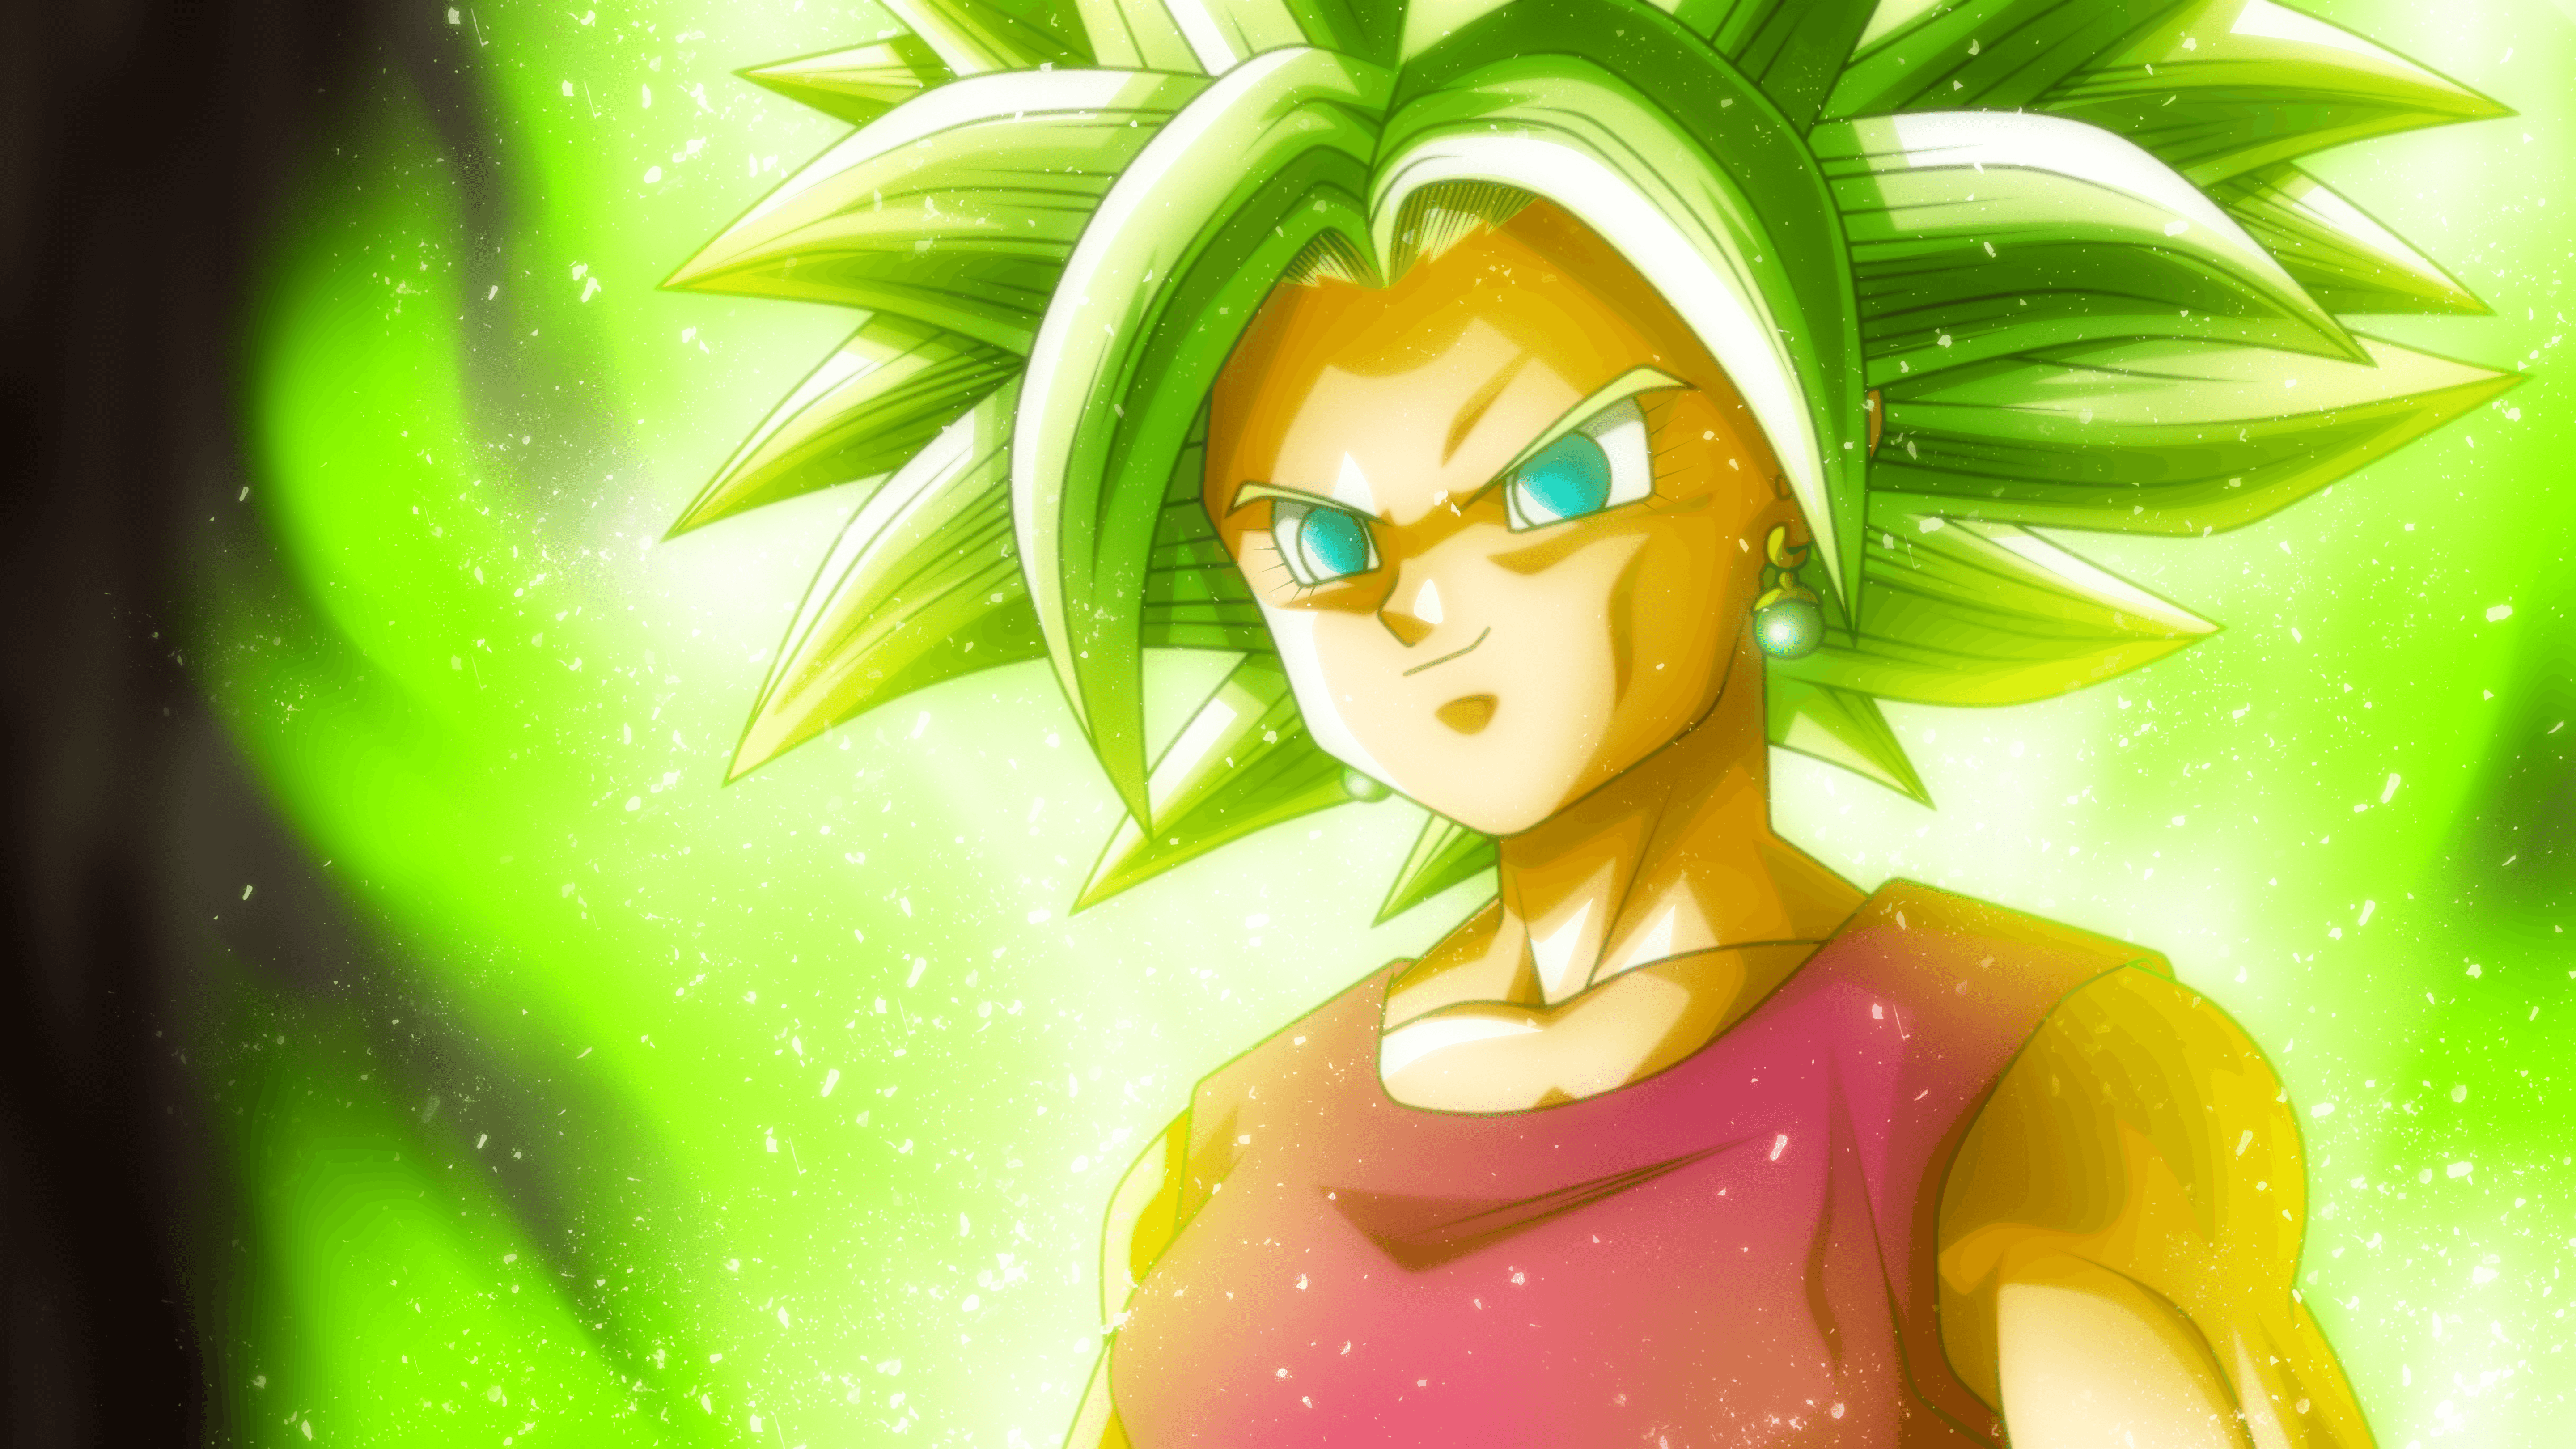 Kefla 5k Retina Ultra HD Wallpapers and Backgrounds Image